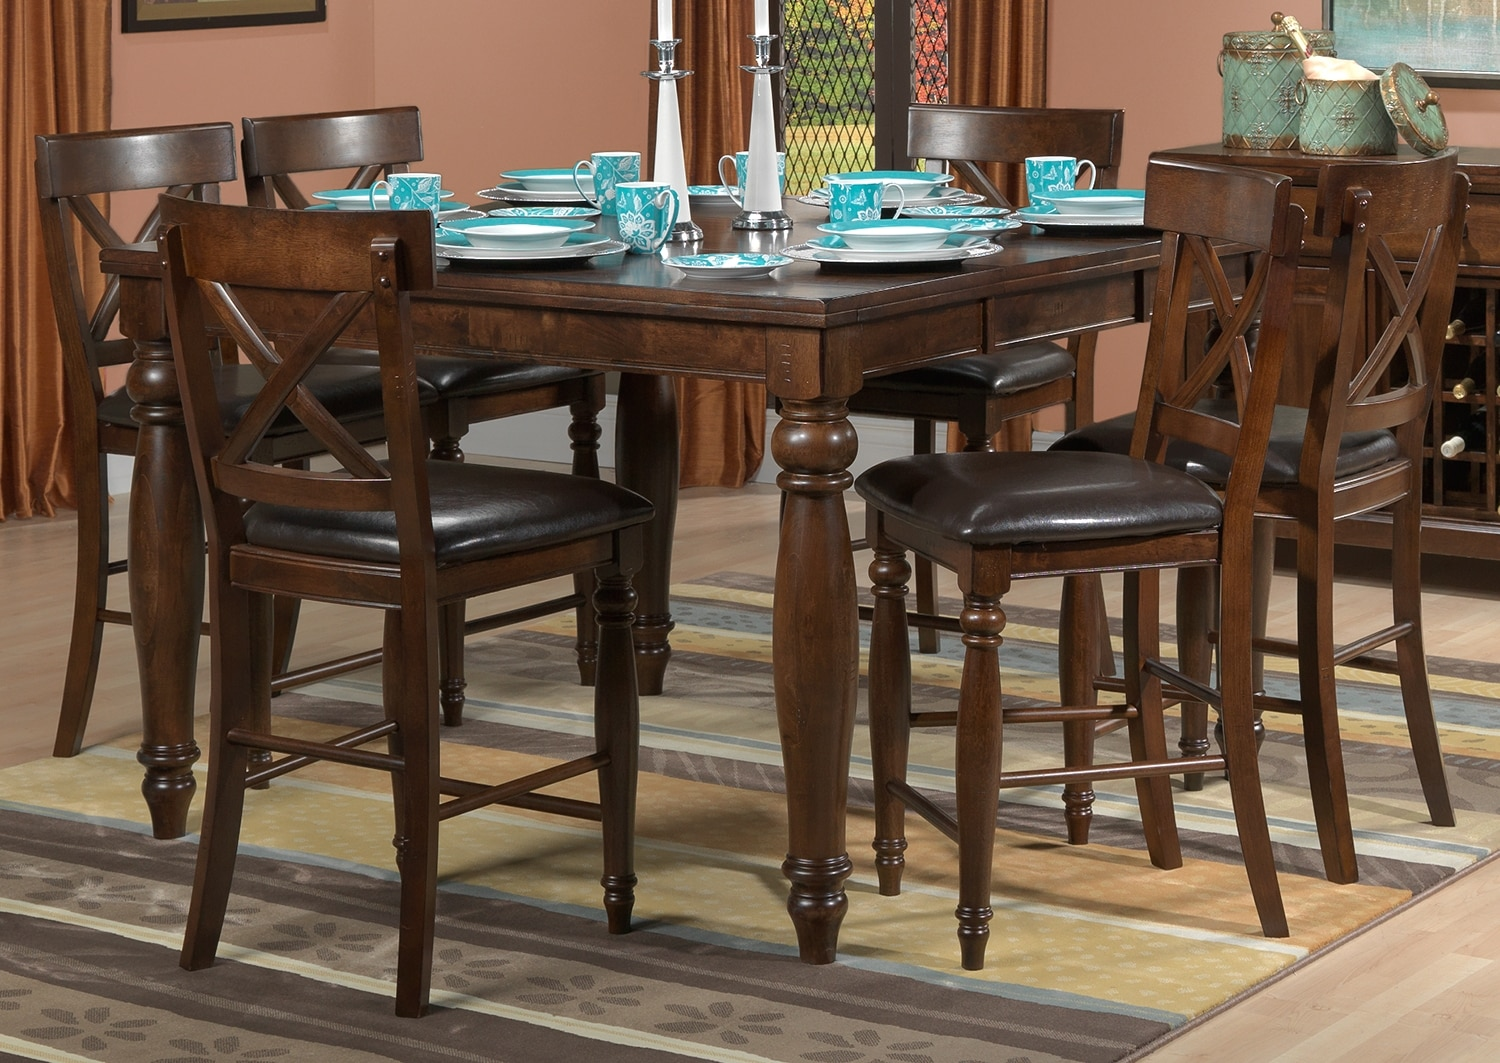 Dining Room Furniture - Kingstown 7-Piece Pub-Height Dining Room Set - Chocolate